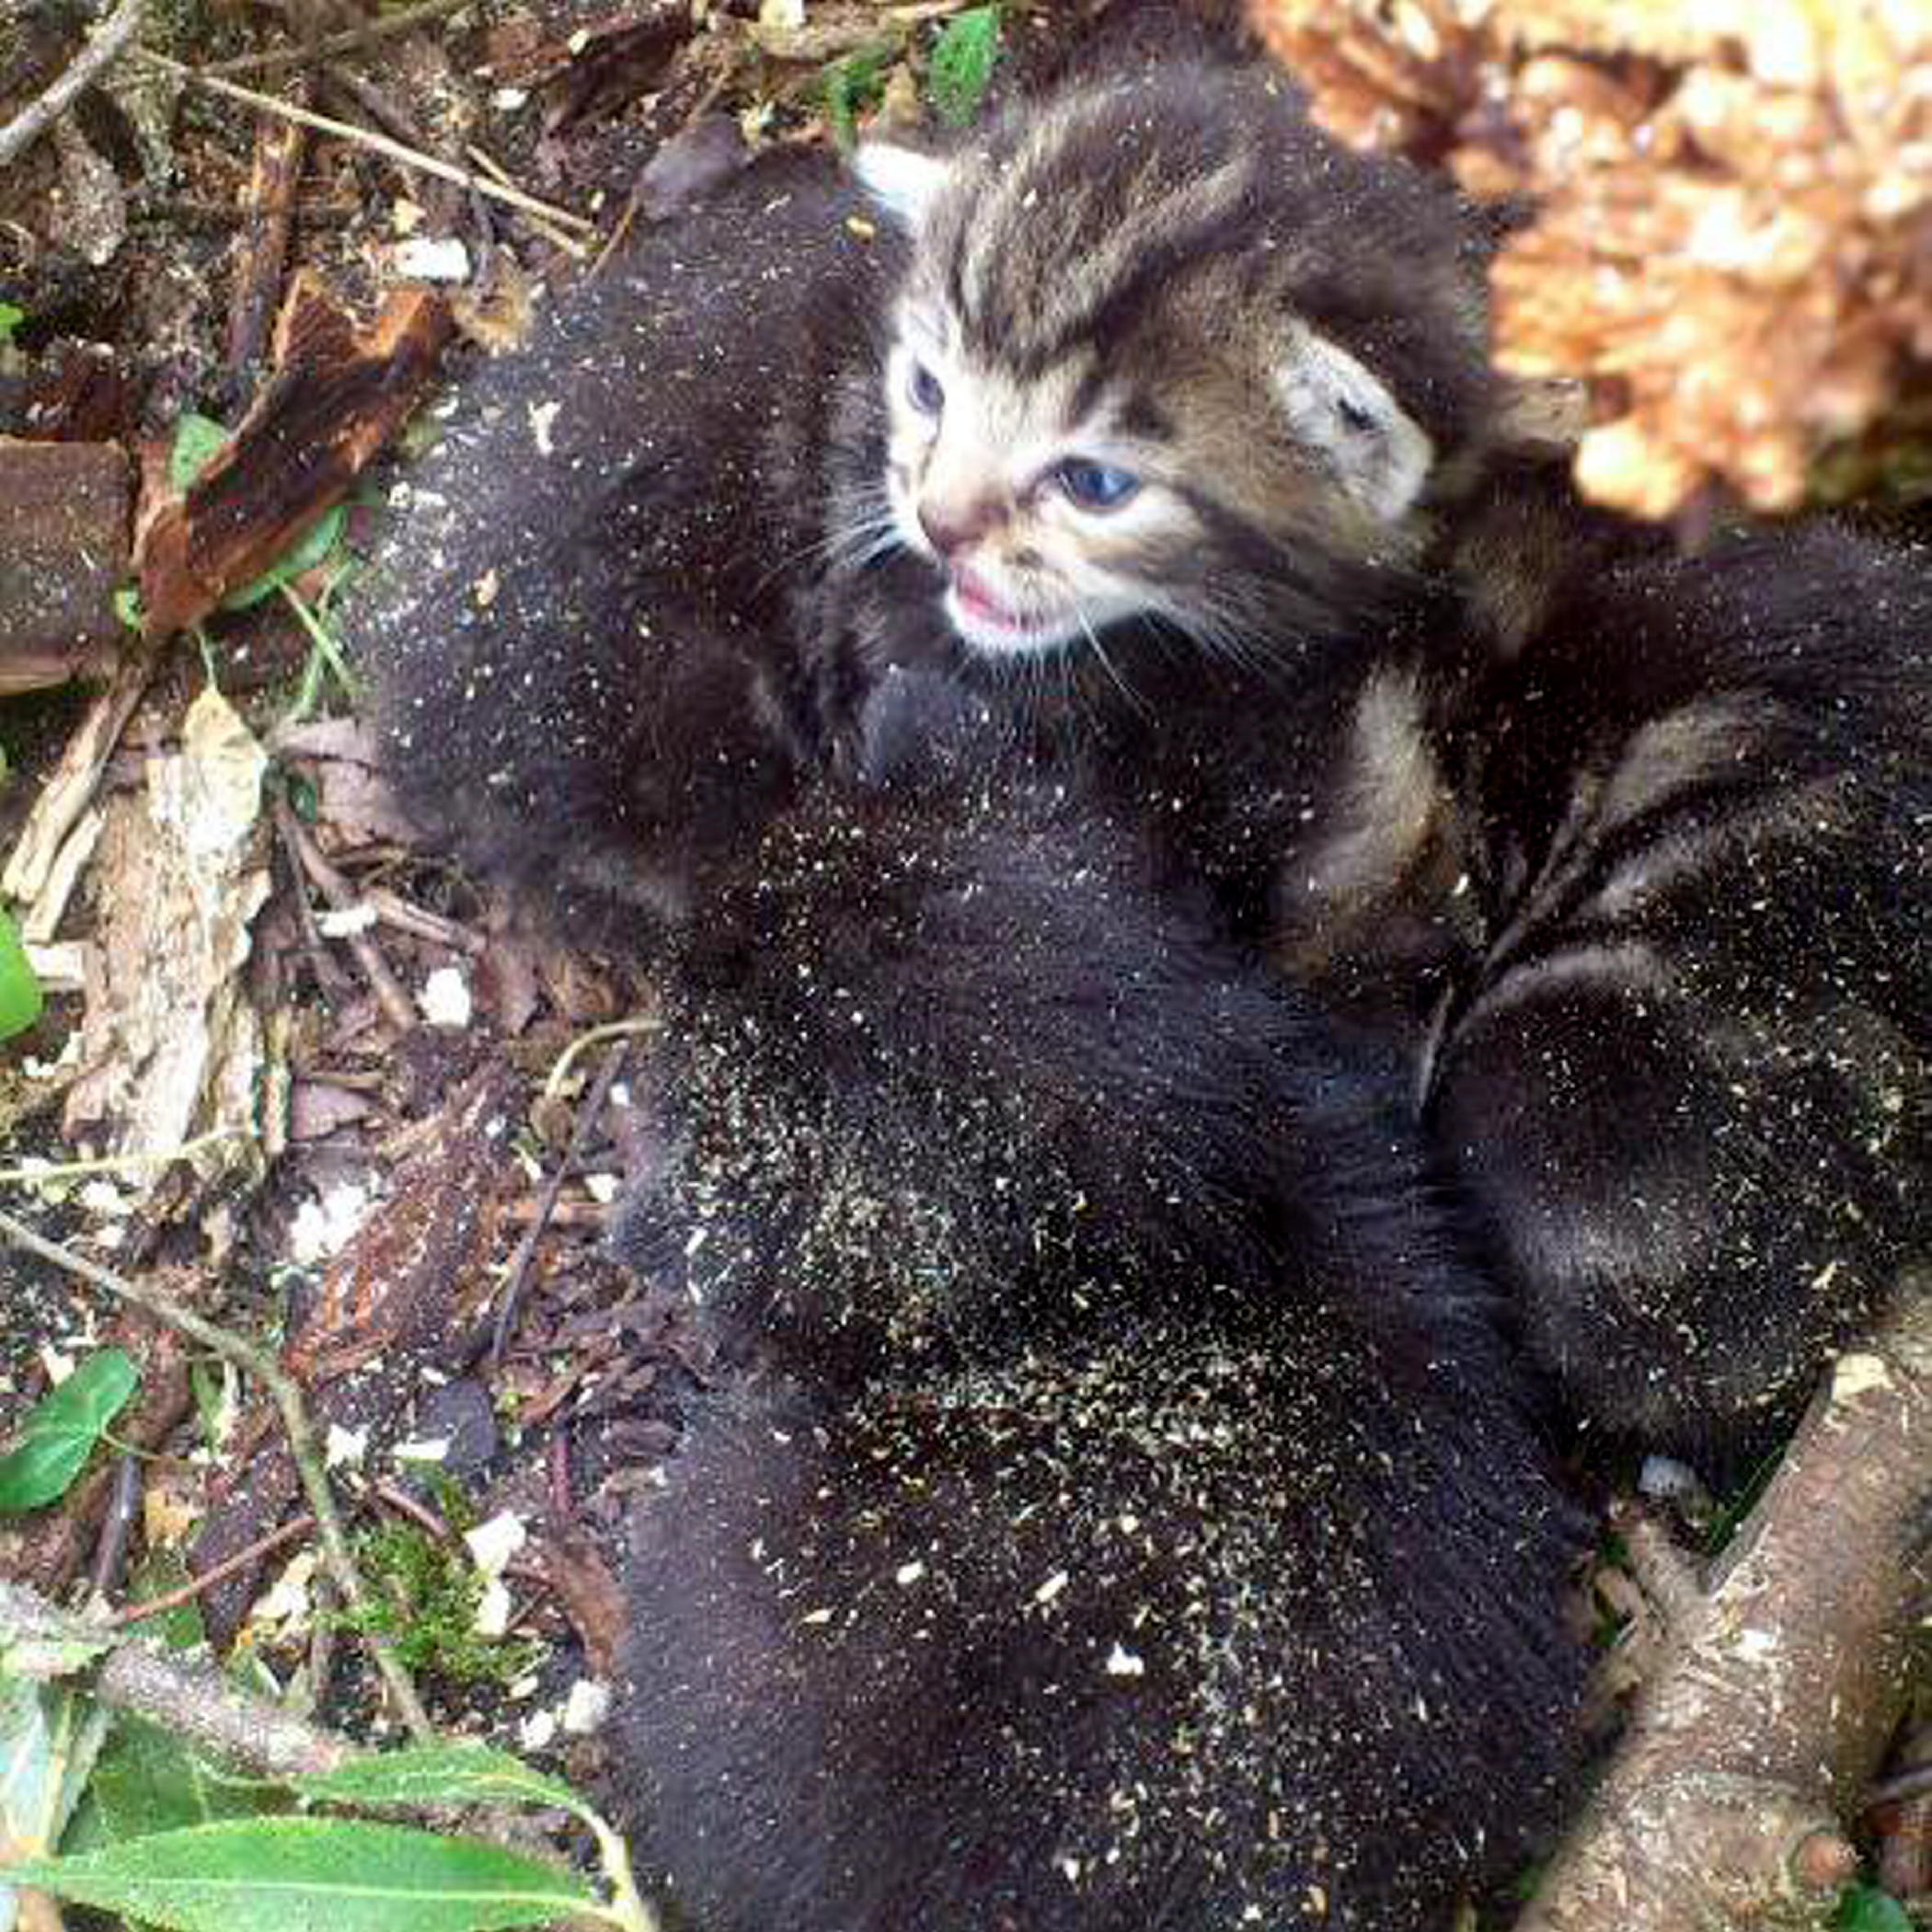 The three homeless kittens inside the tree moments before it was about to be felled